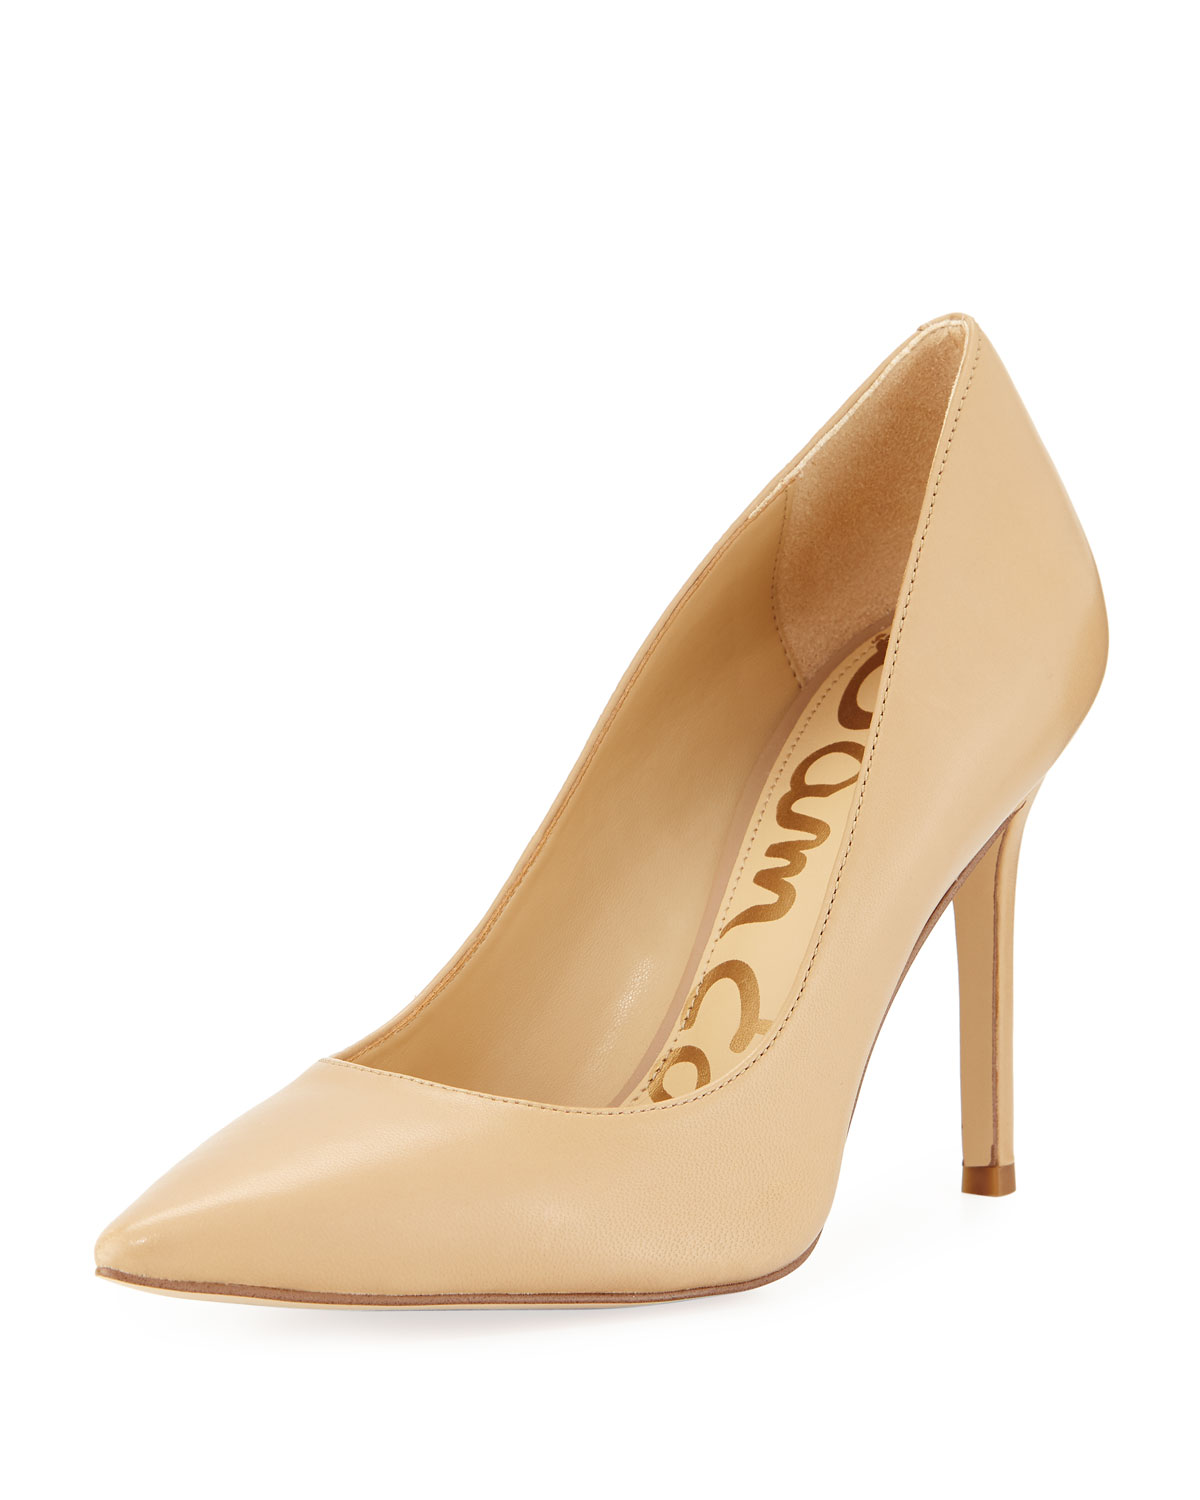 c81802f98 Sam Edelman Hazel Napa Leather Pointed Pumps